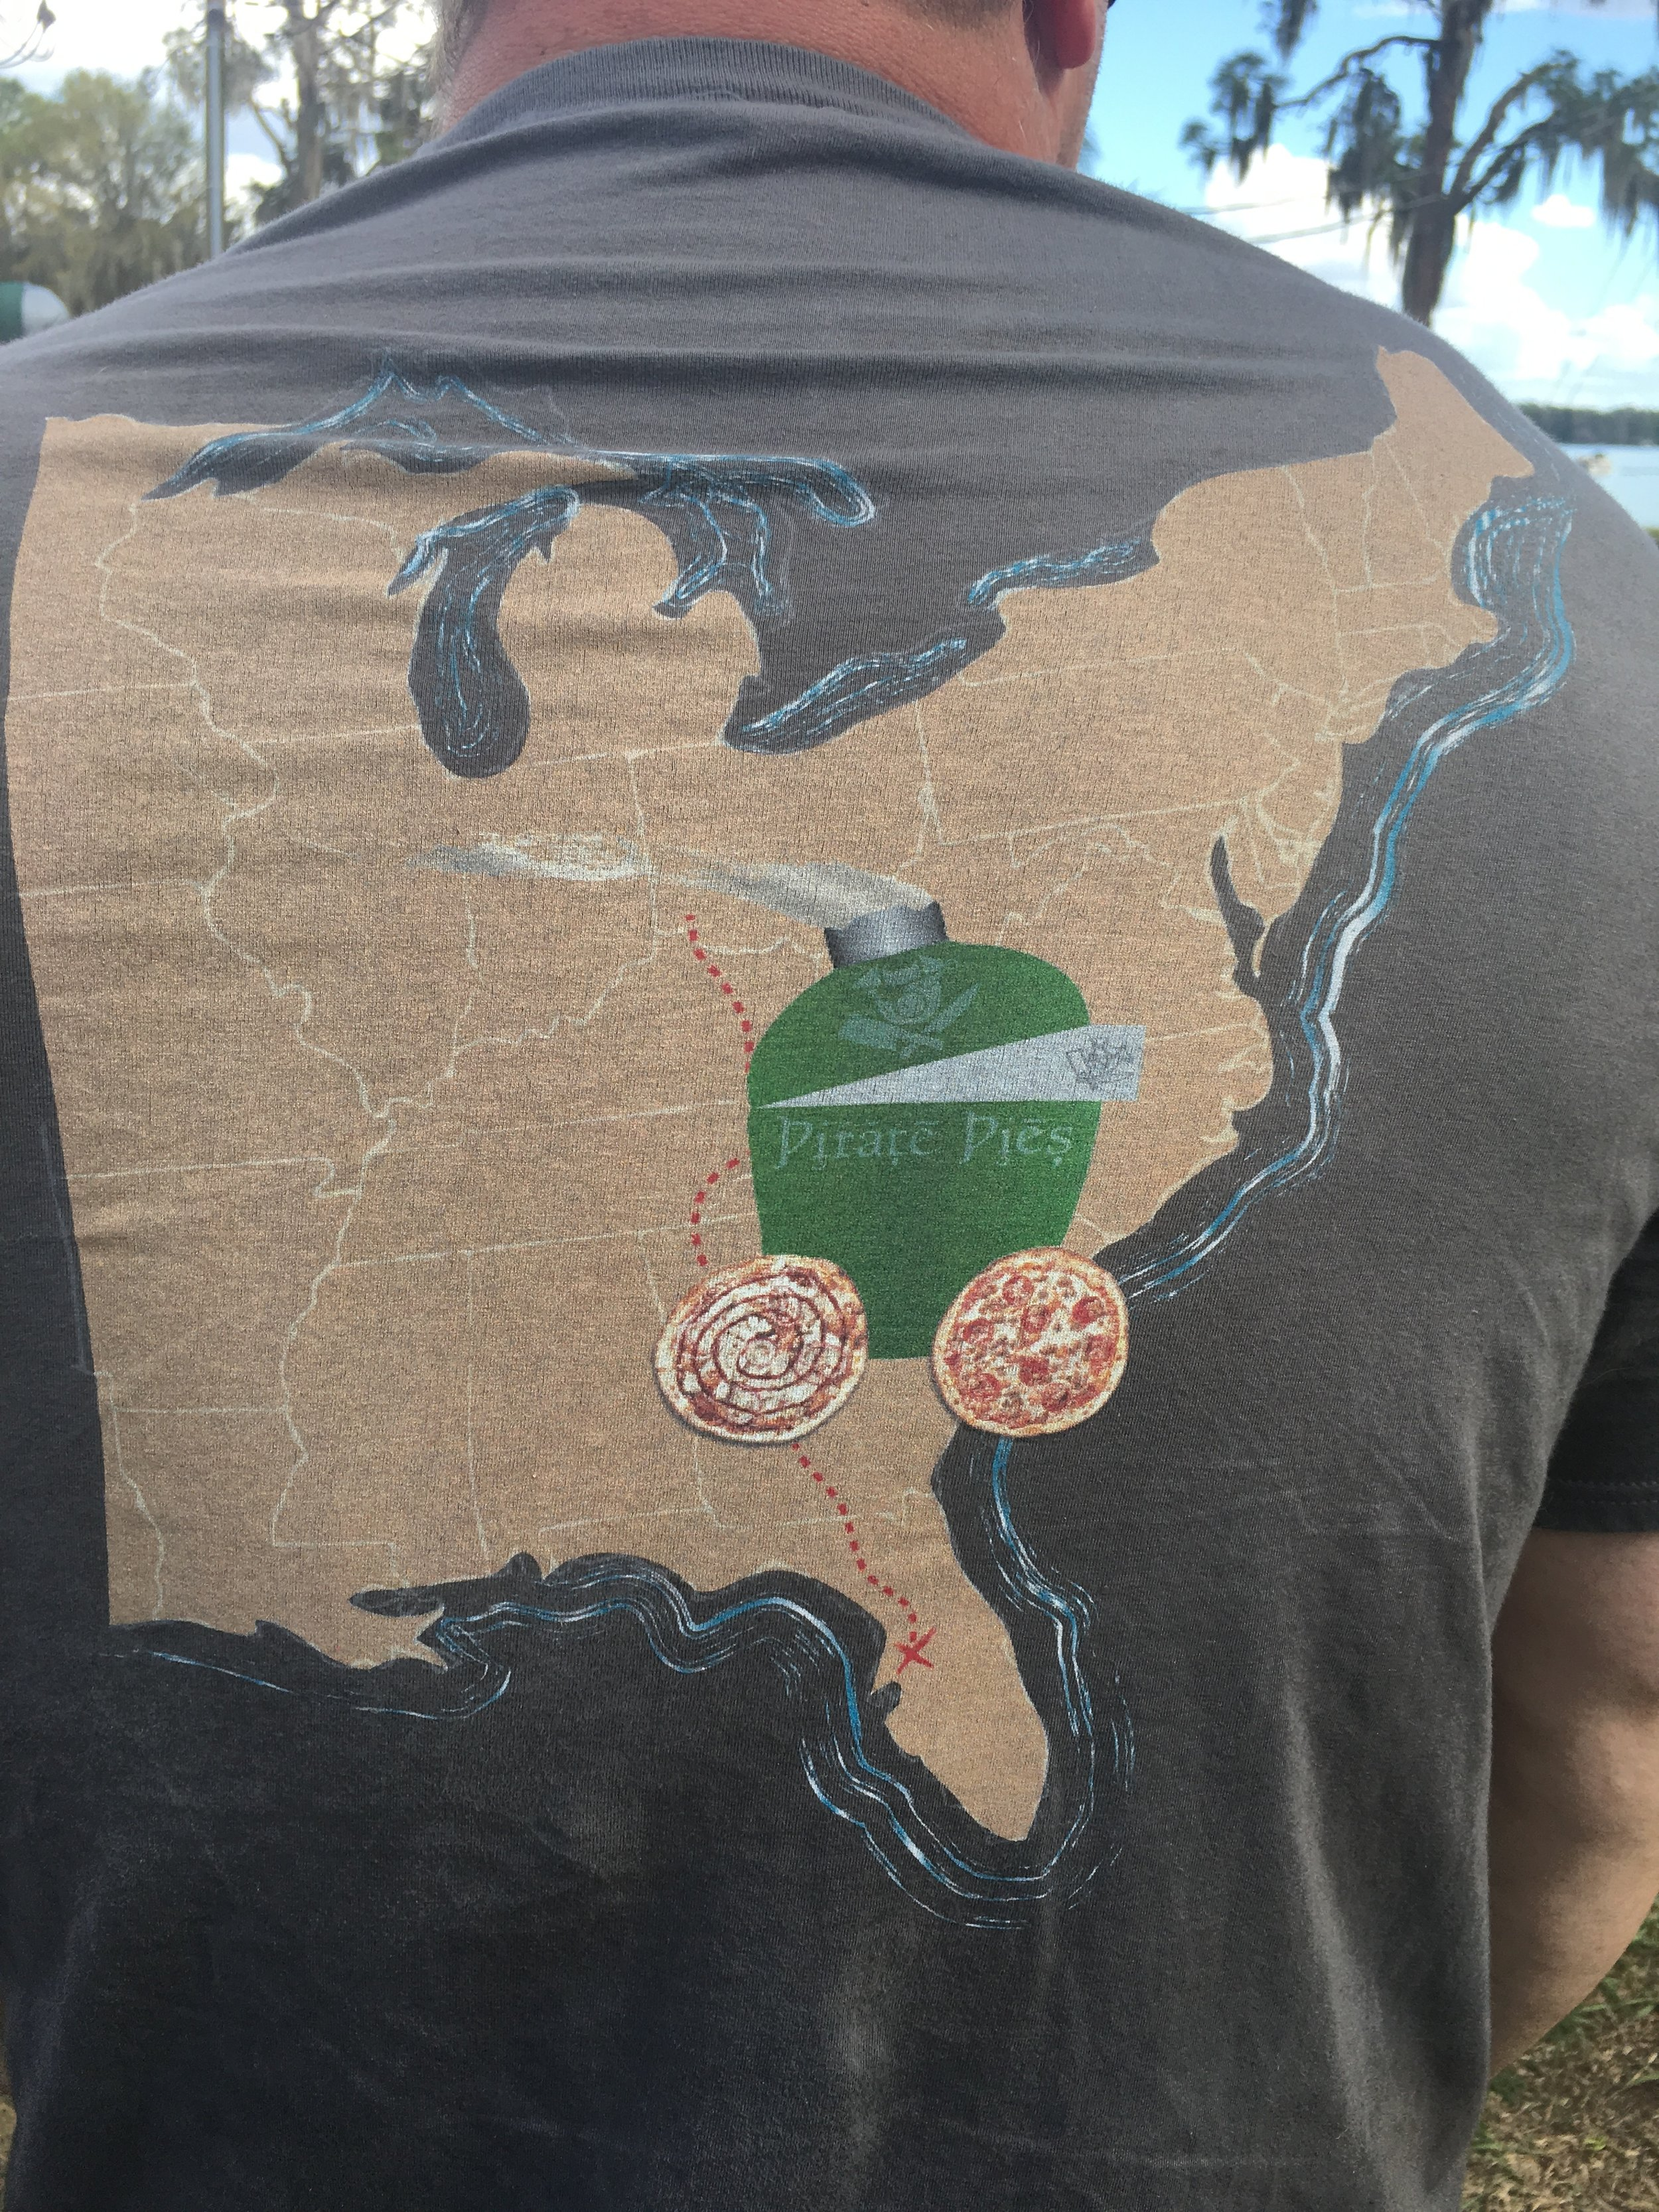 Yes, they had shirts with a Pizza-Porta printed for the occasion.